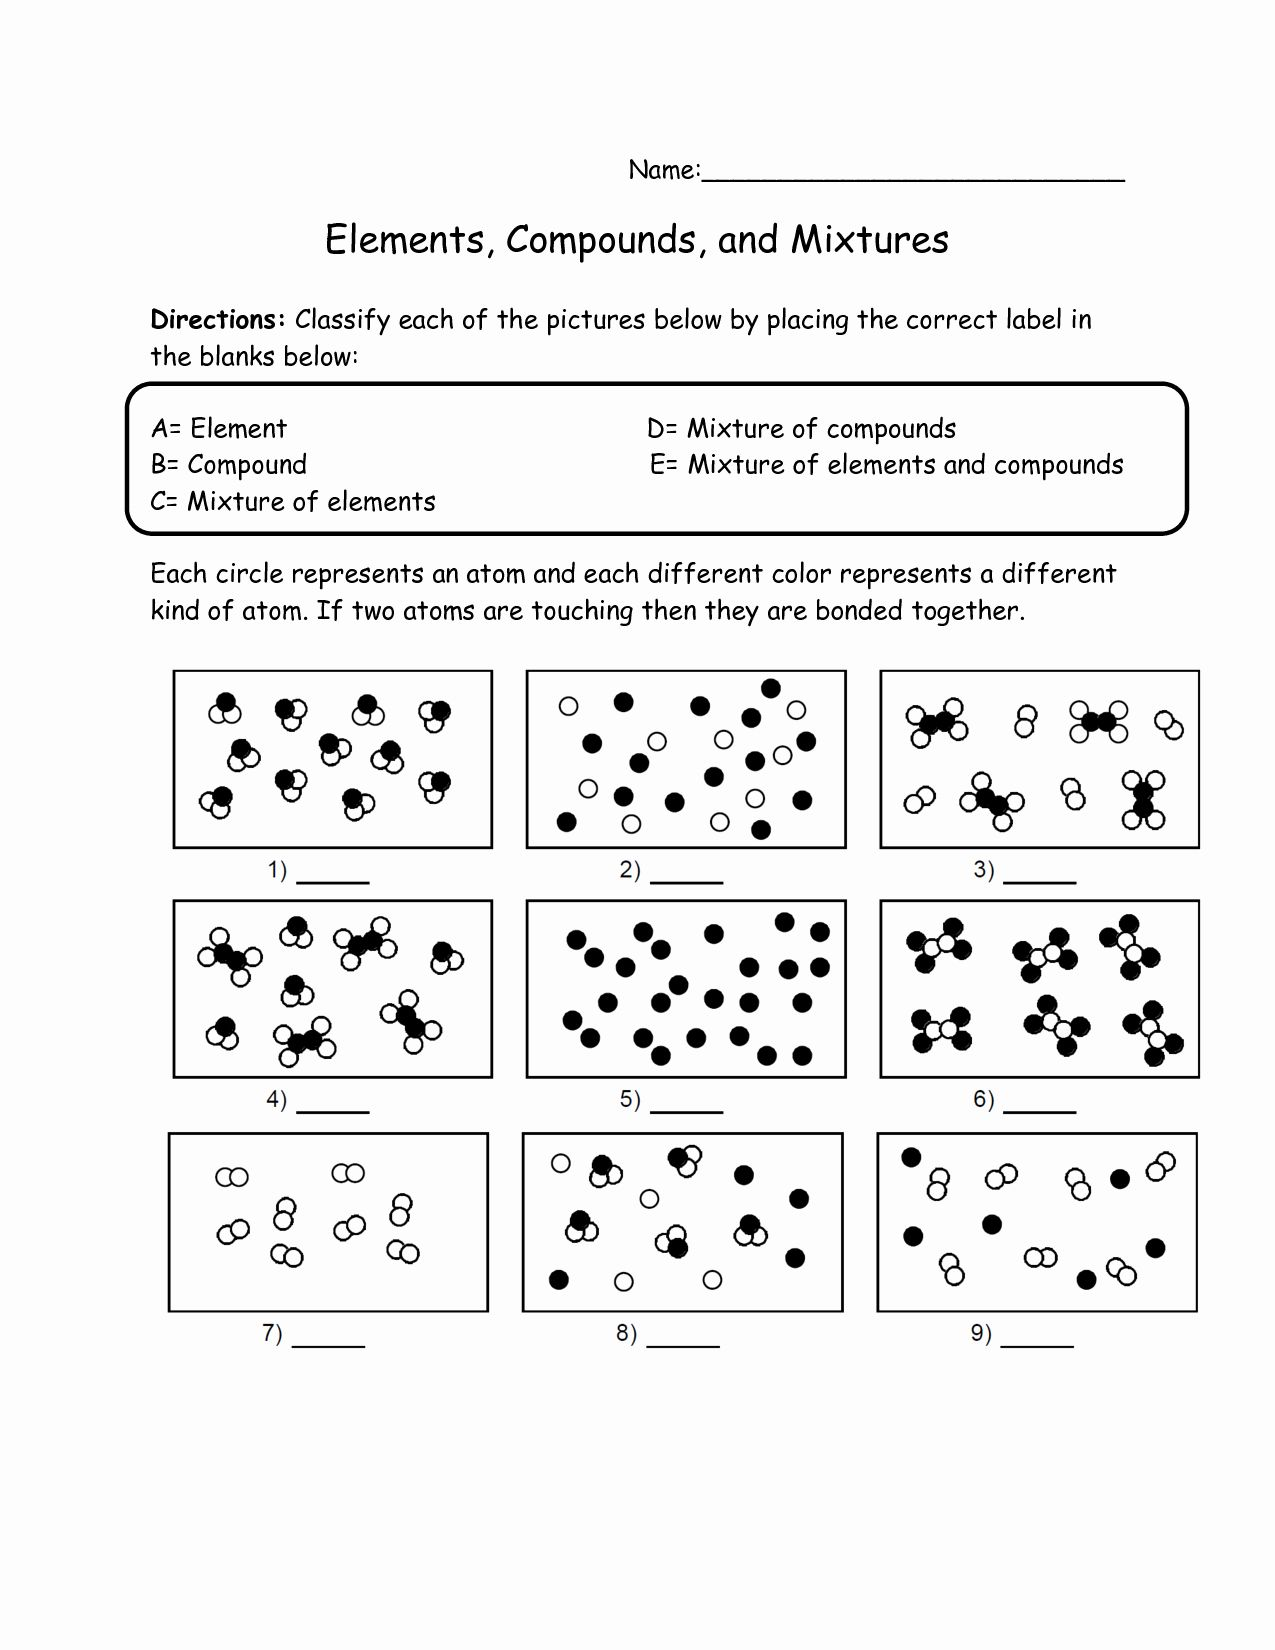 Element Compound Mixture Worksheet Awesome Elements Pounds